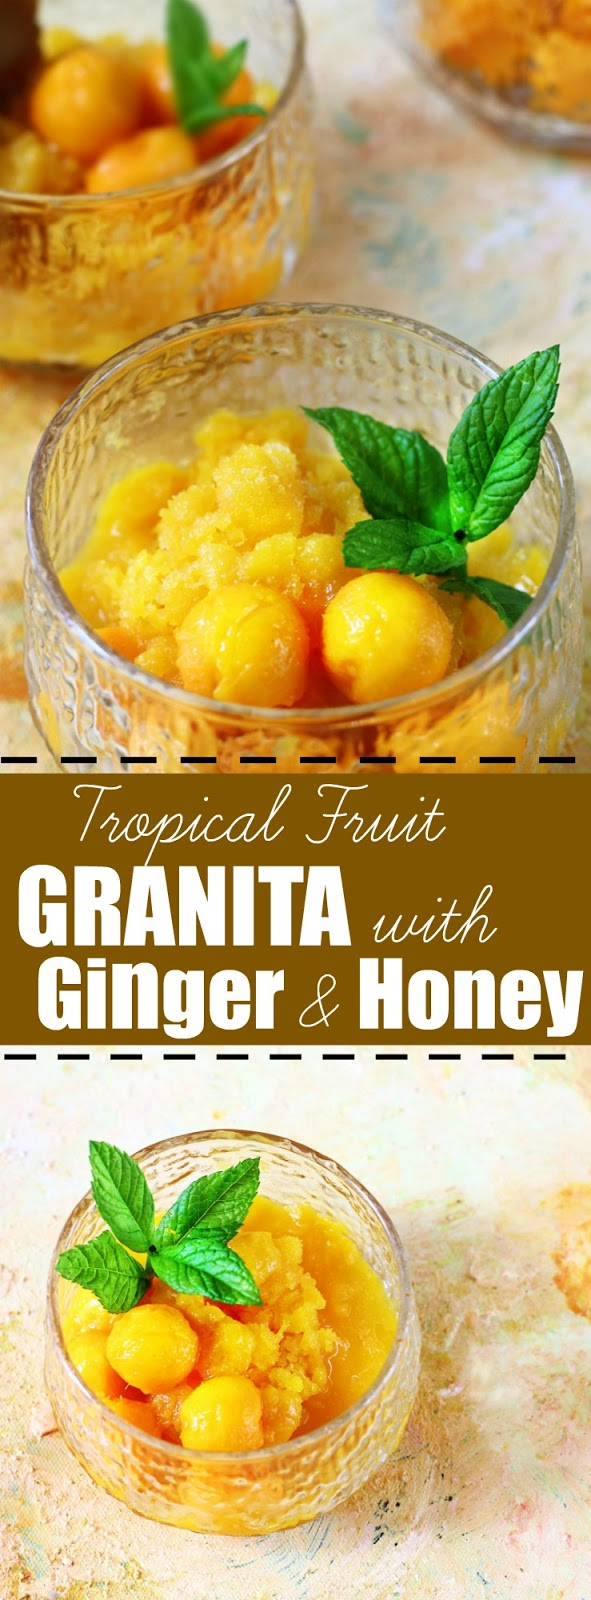 Jagruti's Cooking Odyssey: Tropical Fruit Granita with Ginger and ...